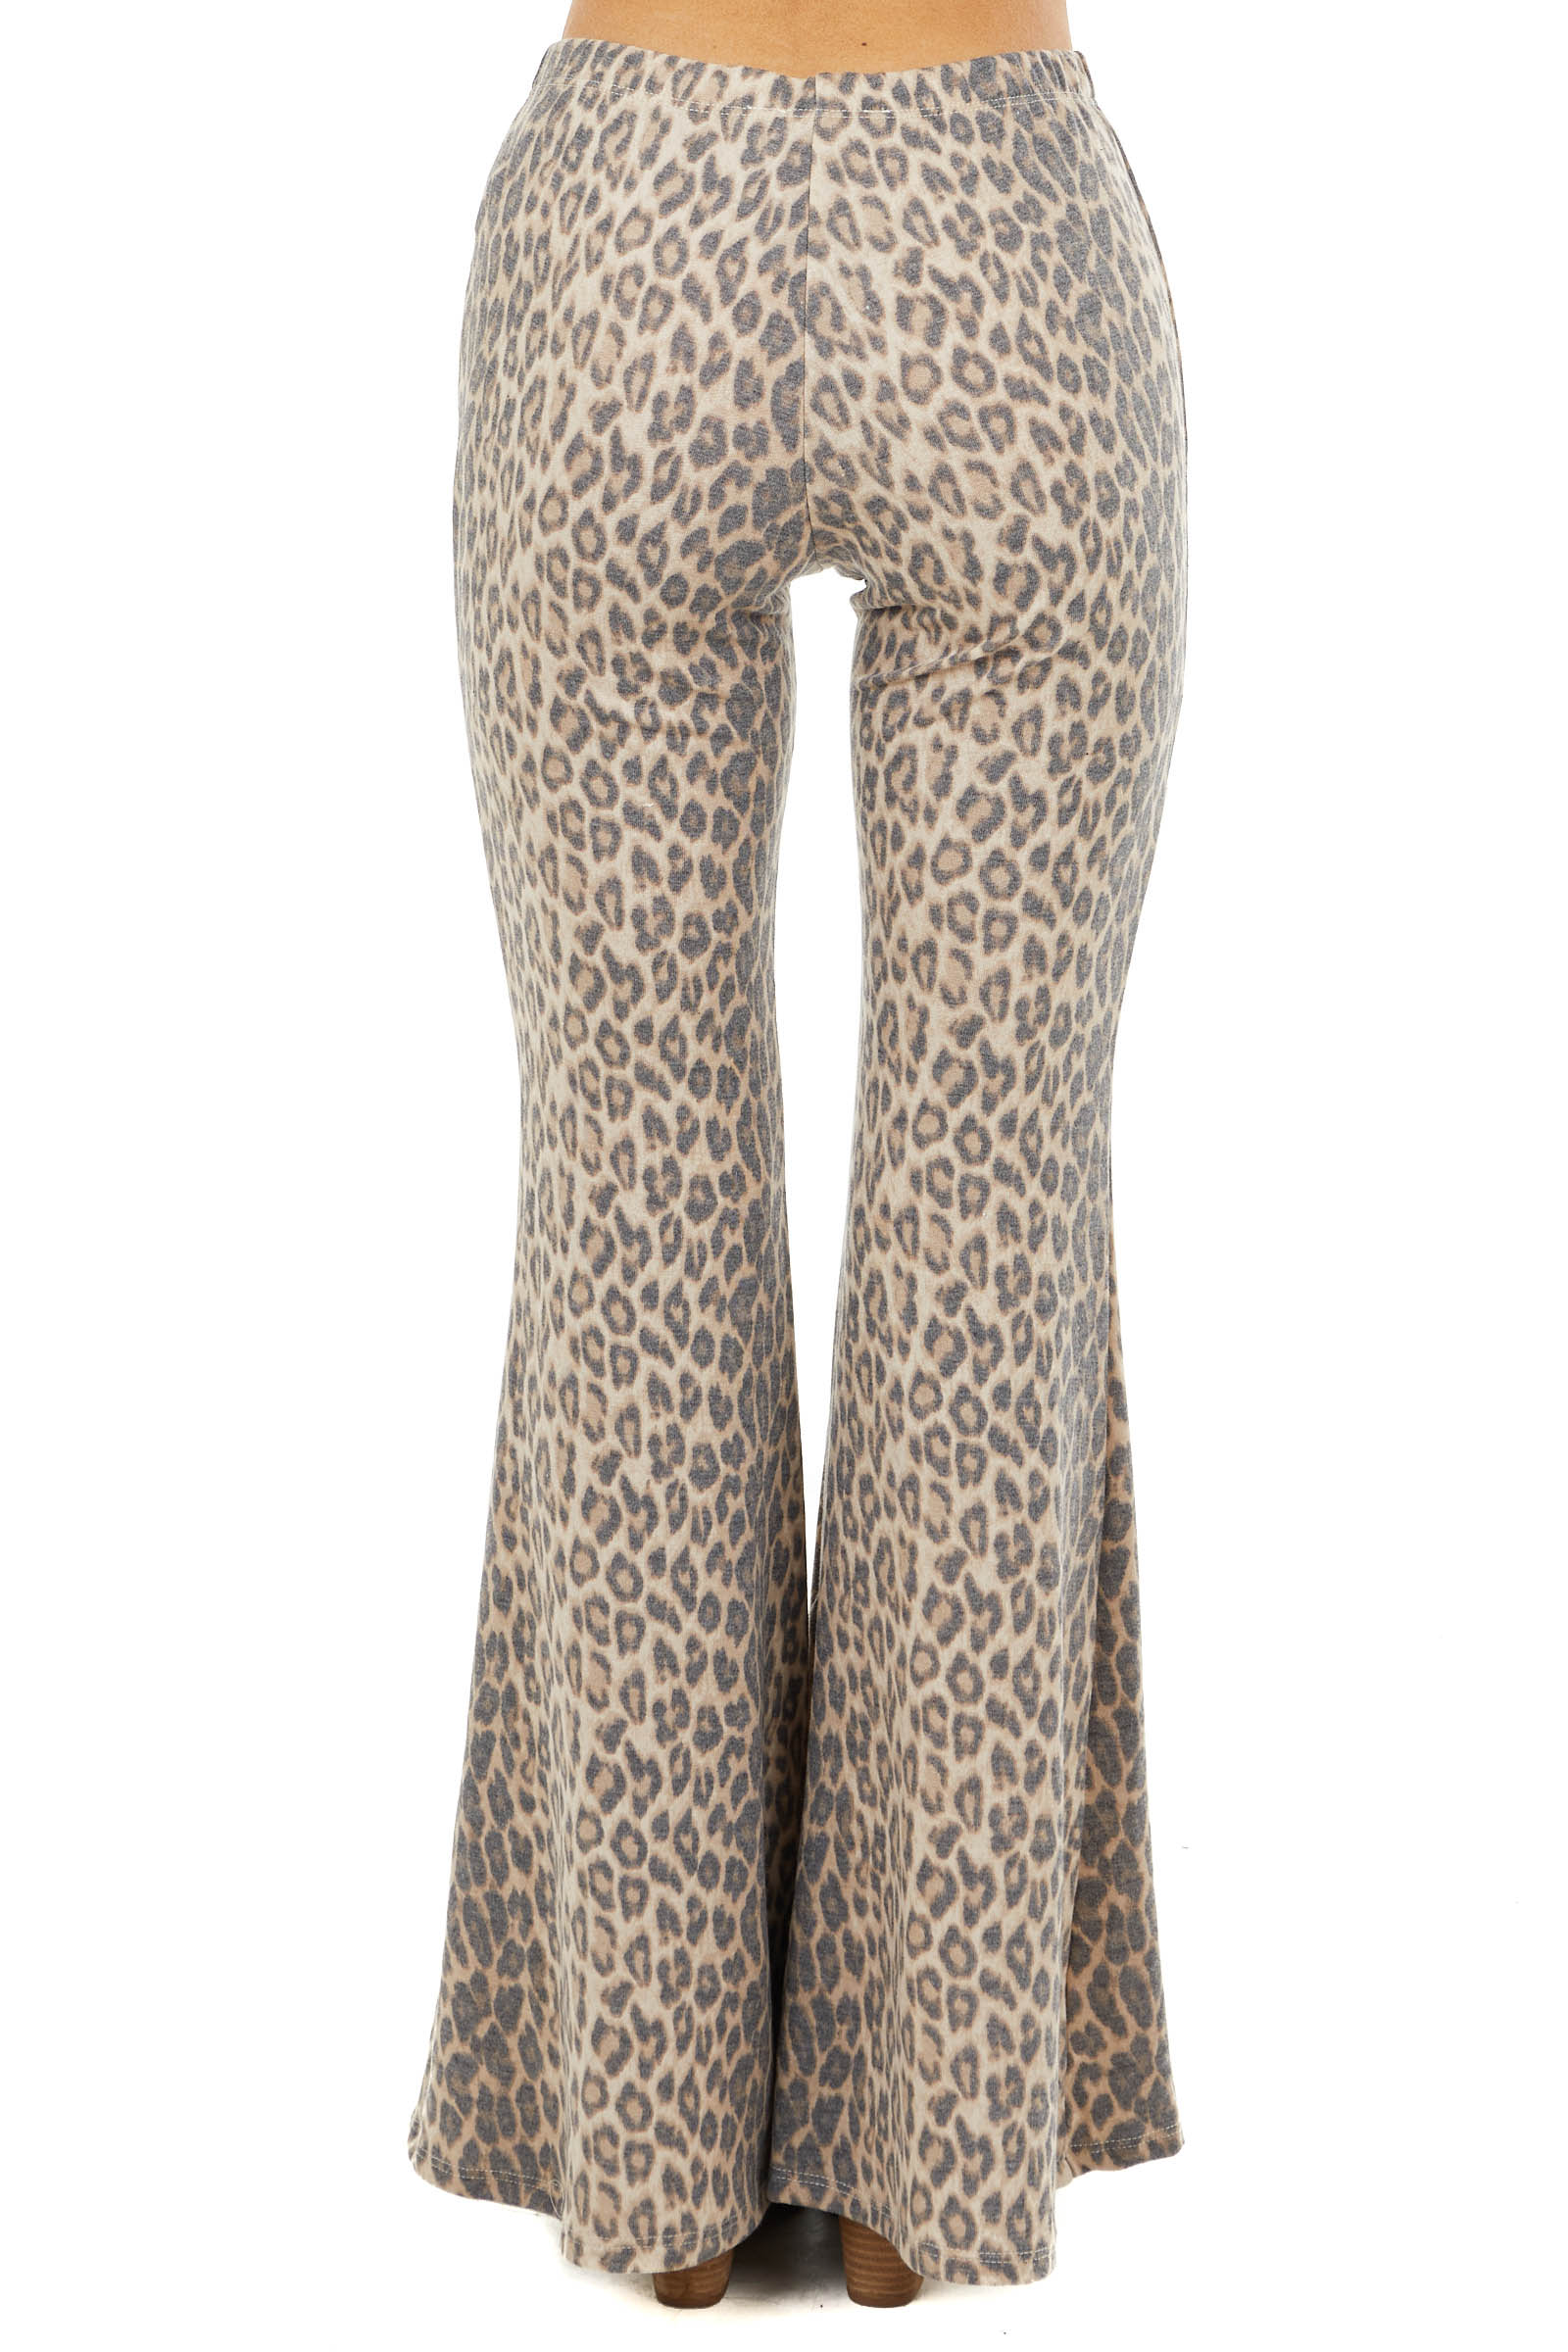 Latte Leopard Print Flare Knit Pants with Elastic Waist